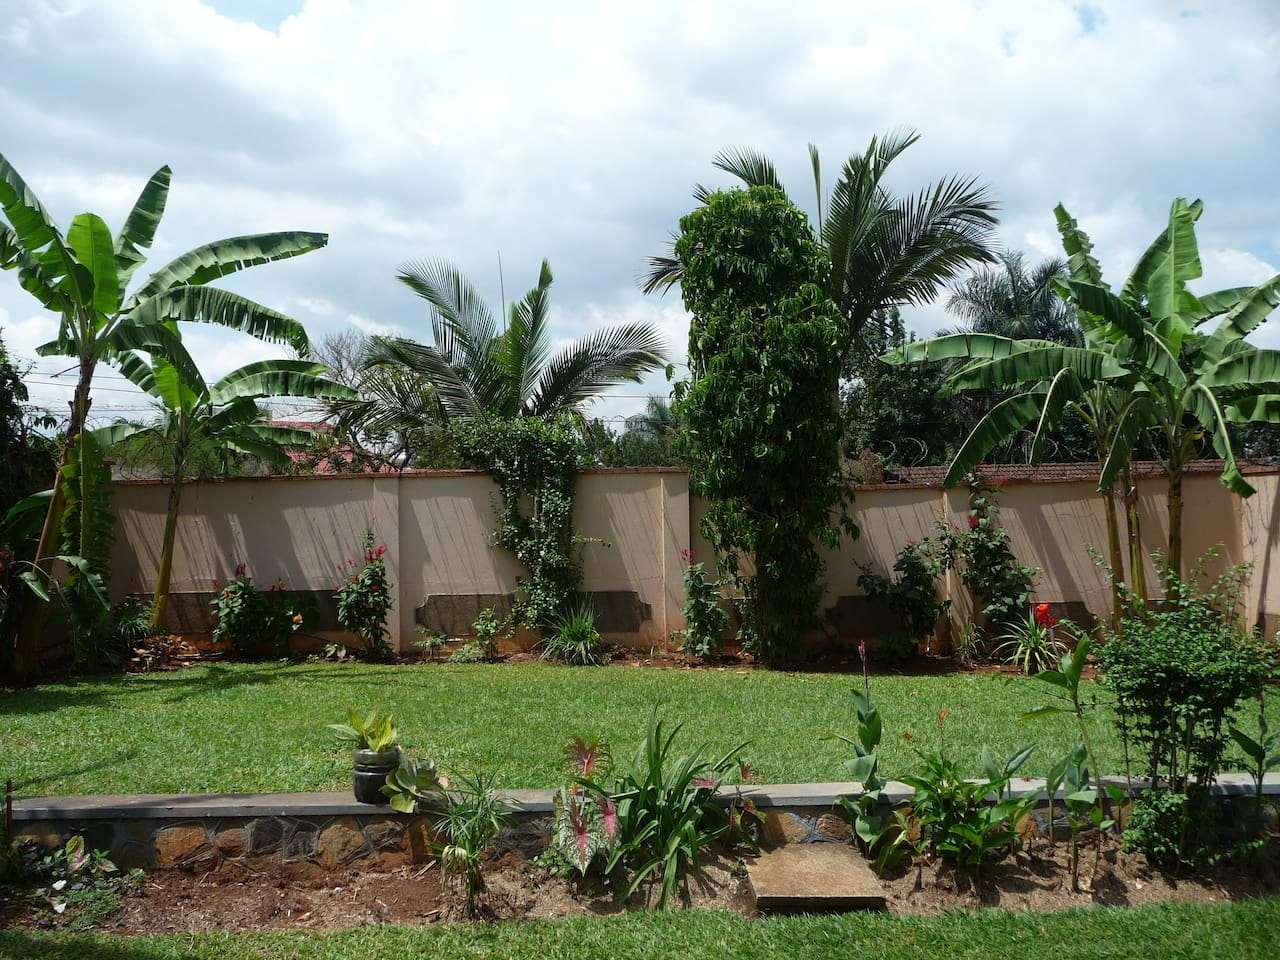 Our beautiful garden with Banana Trees, Papyrus and Hibiscus bushes invites to read a book, watch birds or simply relax. Many birds like Black and White Casqued Hornbills, Grey parrots, Sunbirds and Hadada Ibis come and visit regularly.